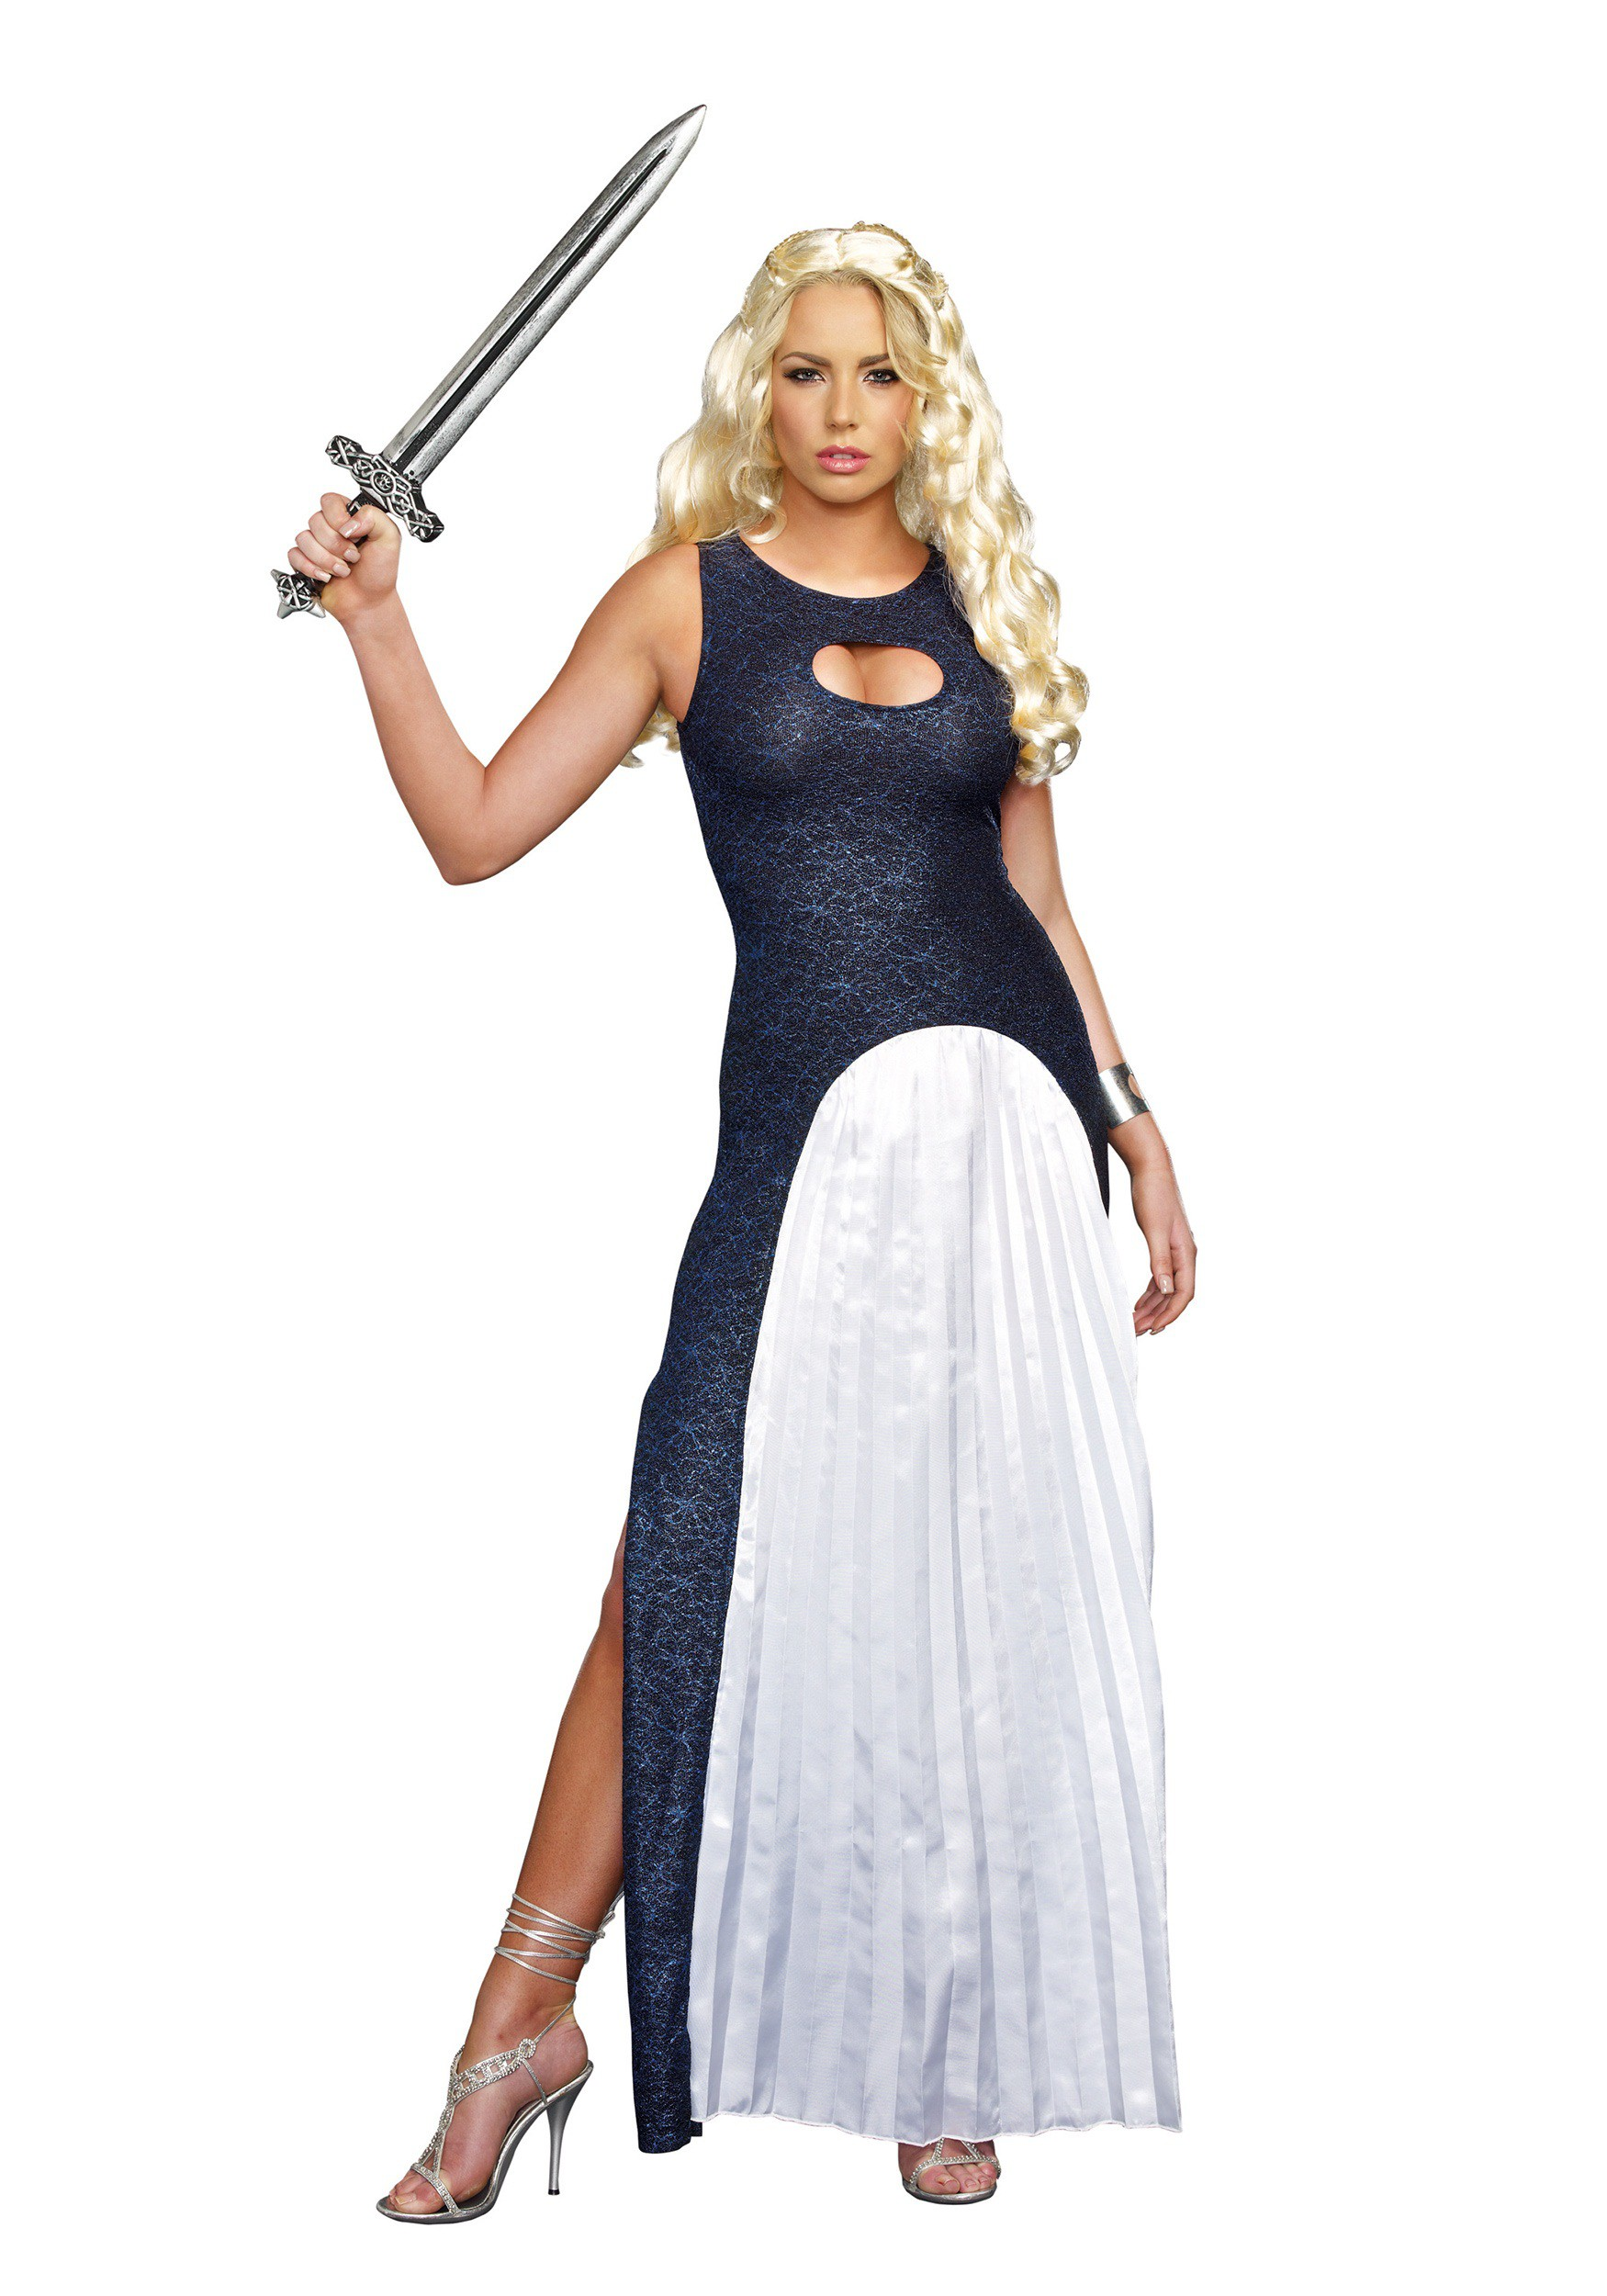 Women's Queendom Come Costume